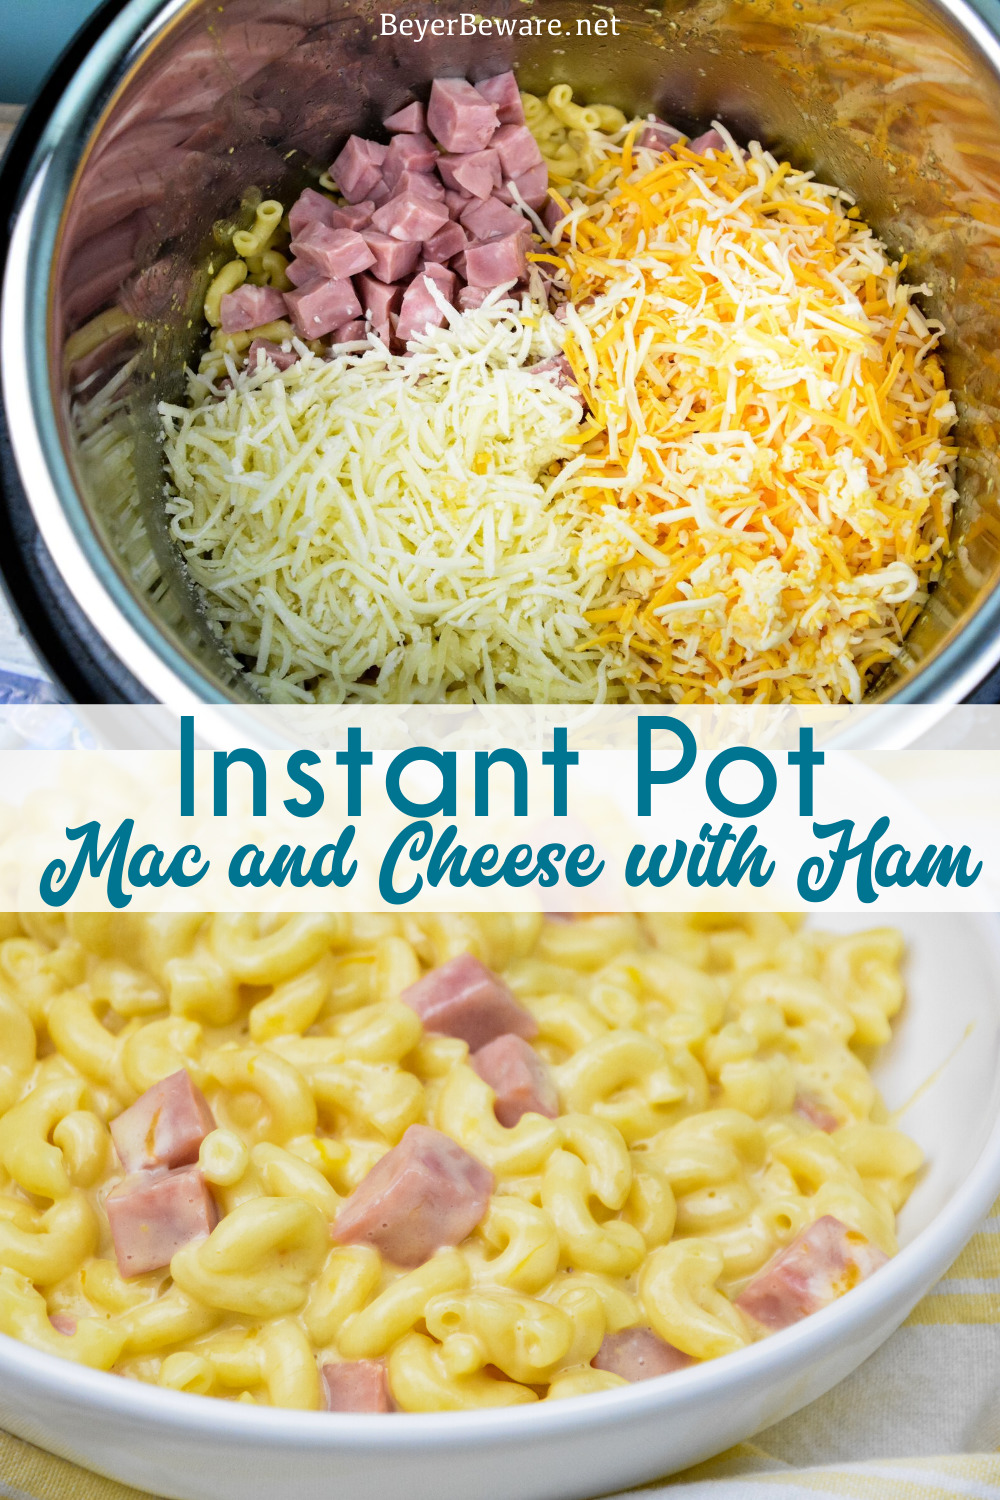 Instant Pot mac and cheese with ham is a quick dinner recipe using three kinds of cheese and leftover ham that is done in under 15-minutes and all cooked in the Instant Pot. #InstantPot #MacandCheese #DinnerIdeas #QuickDinnerRecipes #Recipe #Cheese